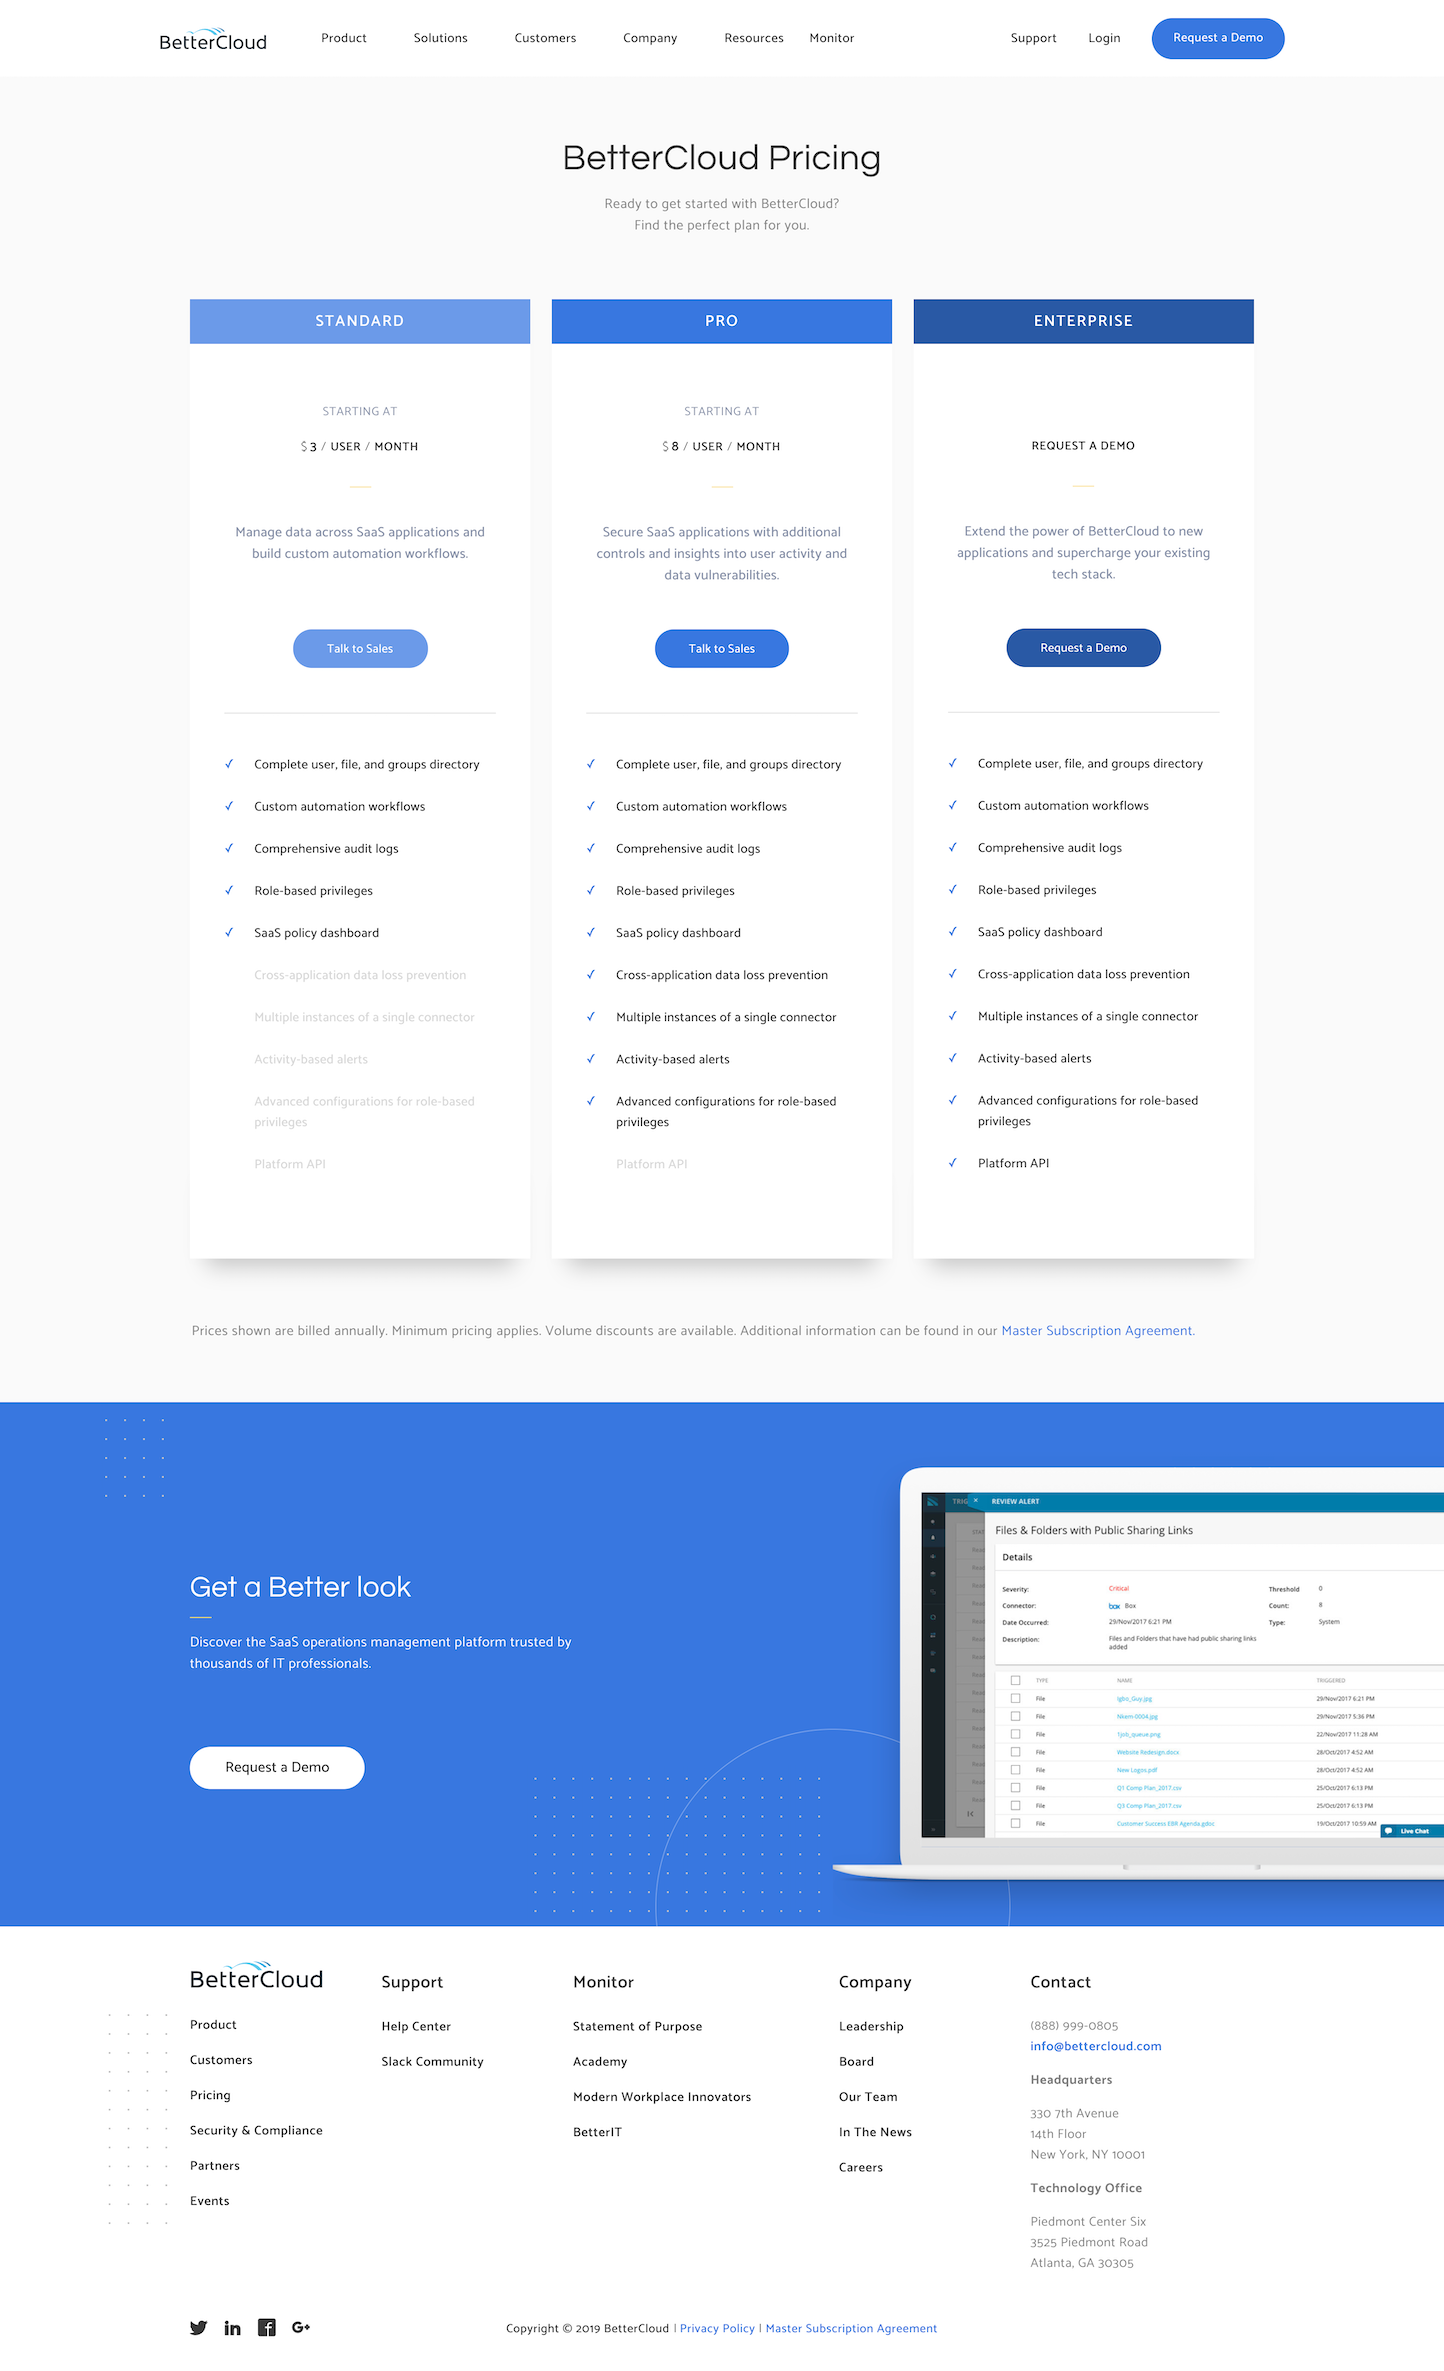 Screenshot of the Pricing page from the Better Cloud website.